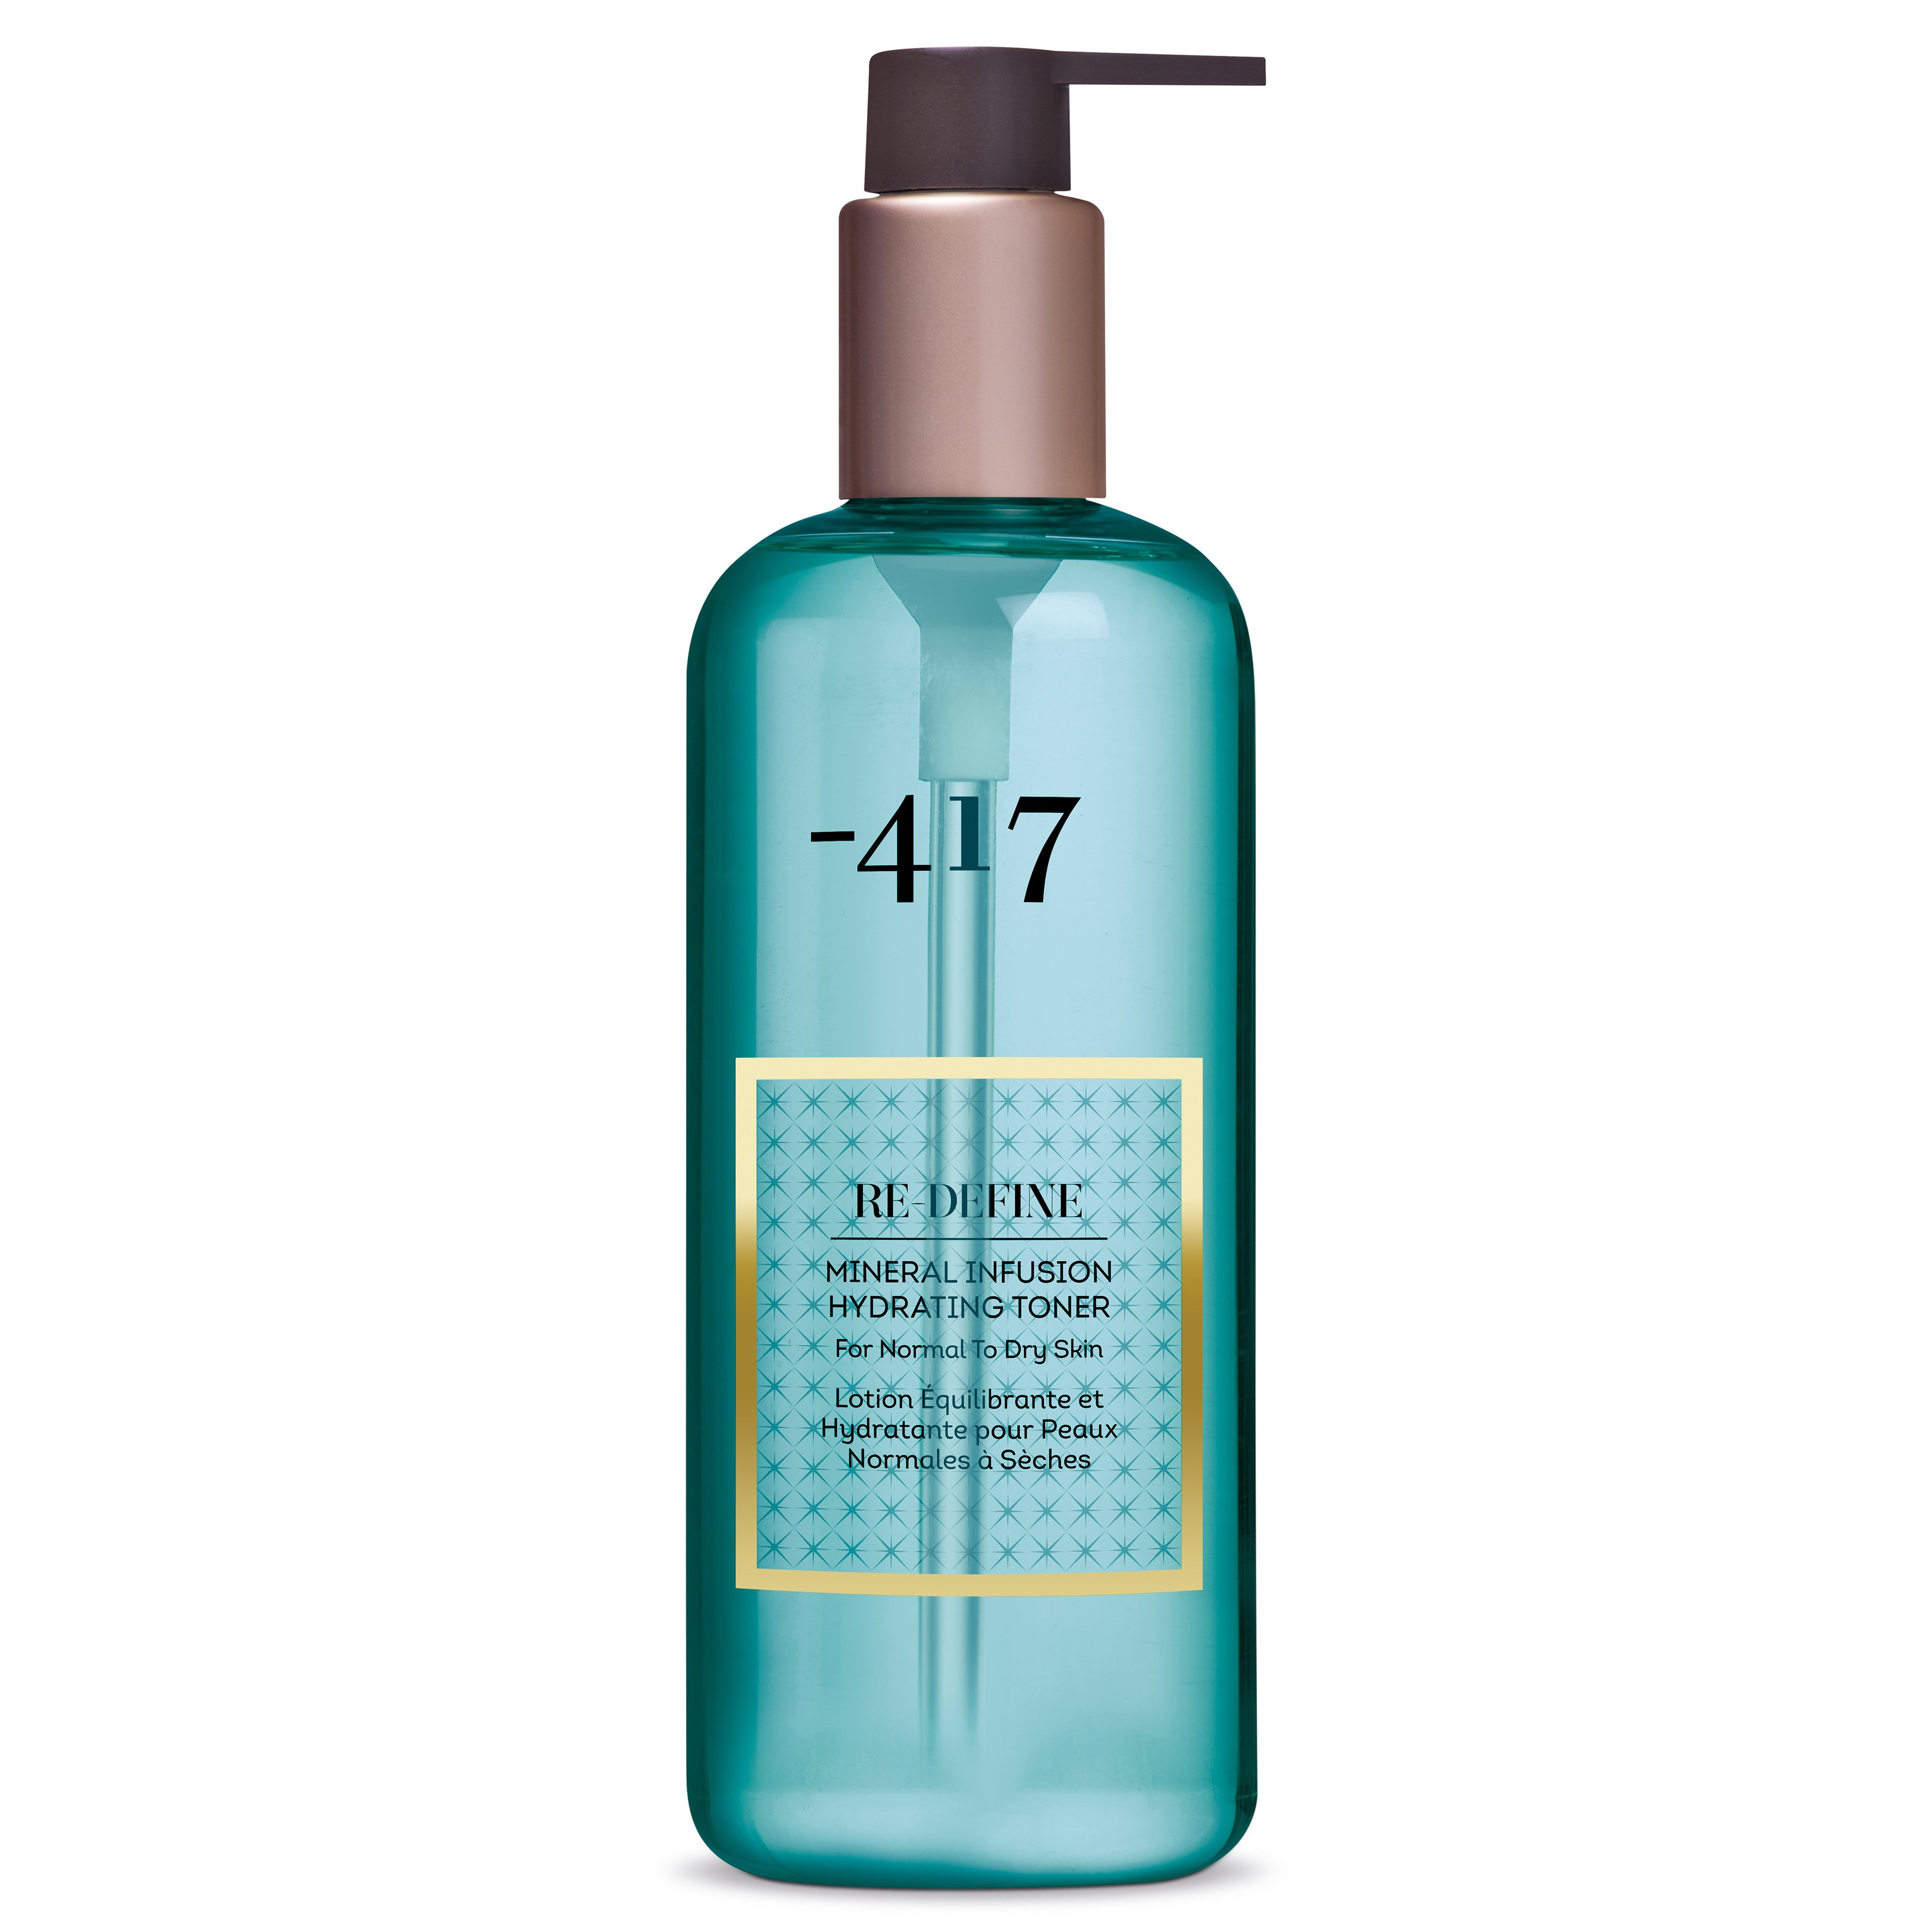 Minus 417 Re-Define Mineral Infusion Hydrating Toner 350ml